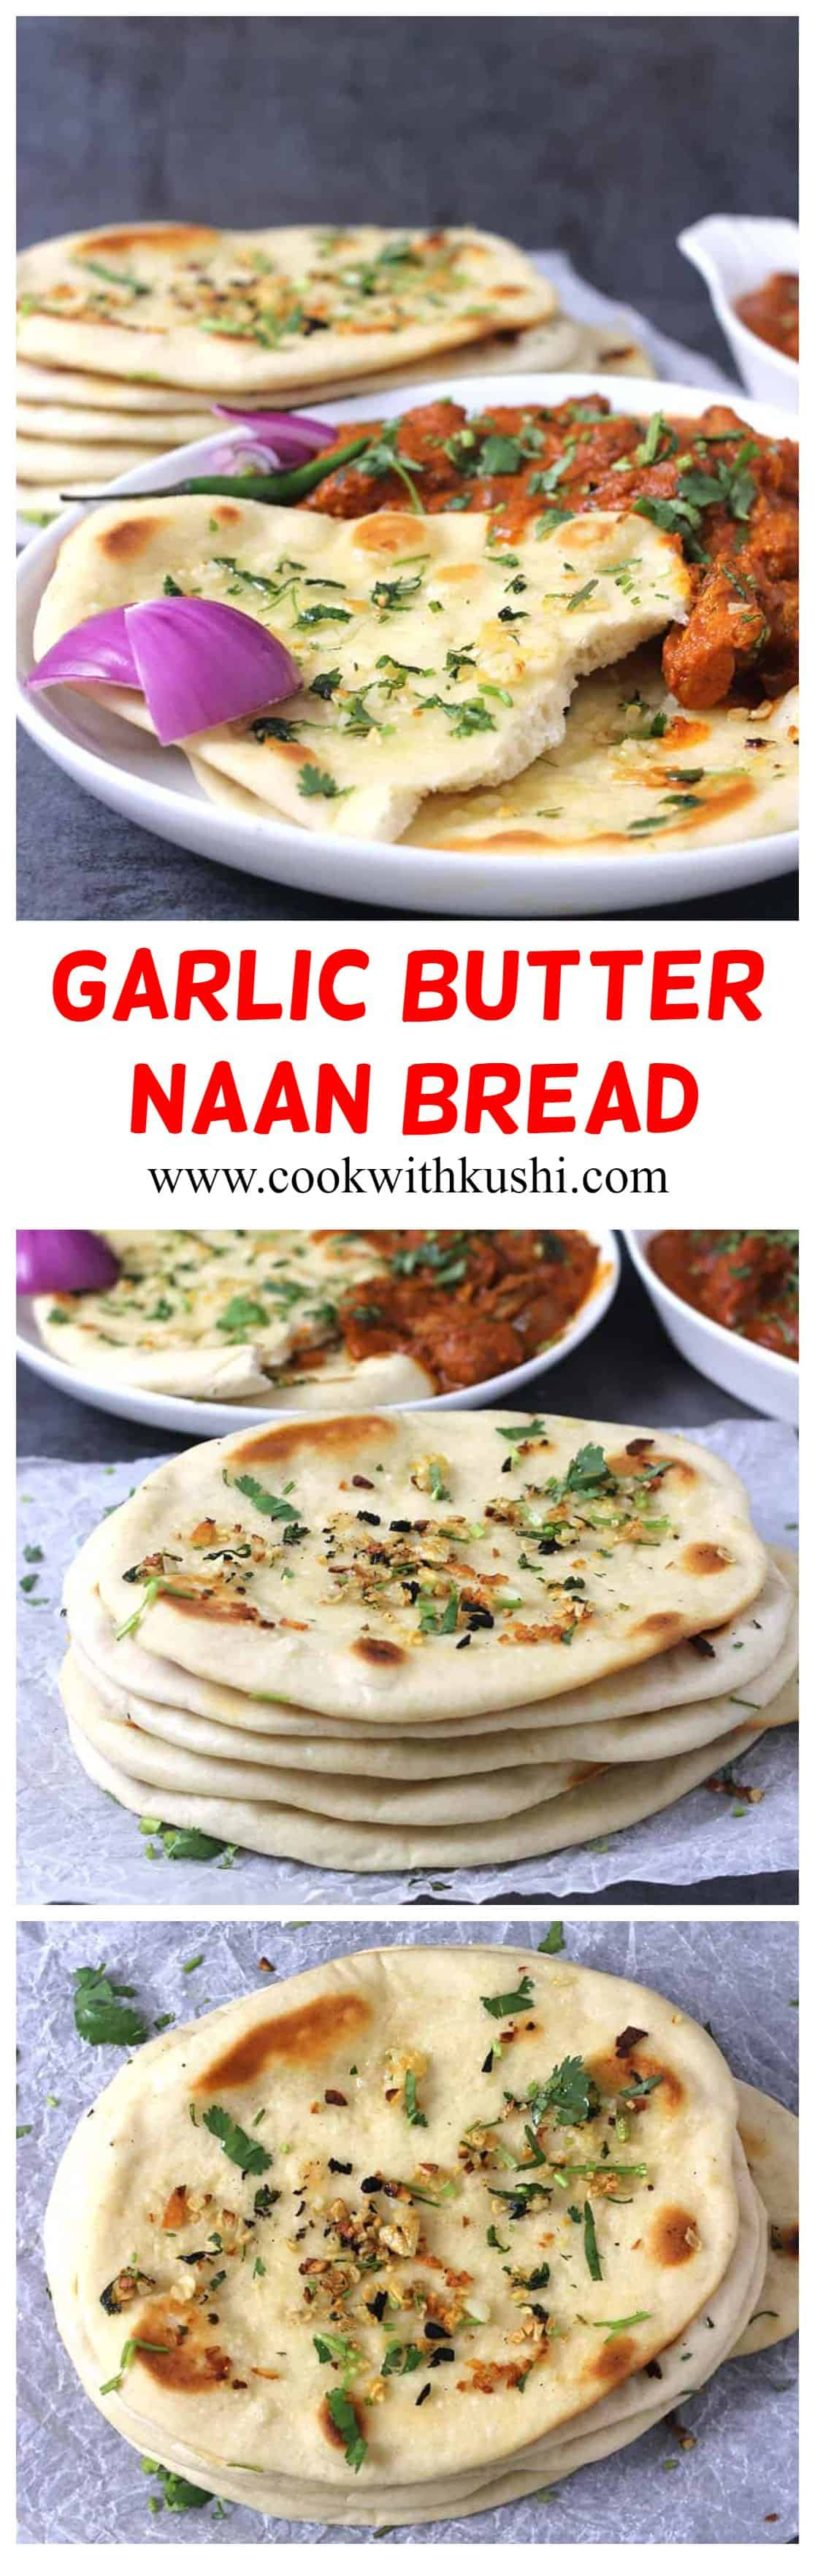 Garlic Naan Bread is a soft and chewy, garlicky and easy to make leavened Indian flatbread that can be served with any of your favorite Indian dishes. #garlicnaanrecipes #naanbreadrecipe #naanpizzarecipes #easynaanbread #garlicnaanbreadnoyeast